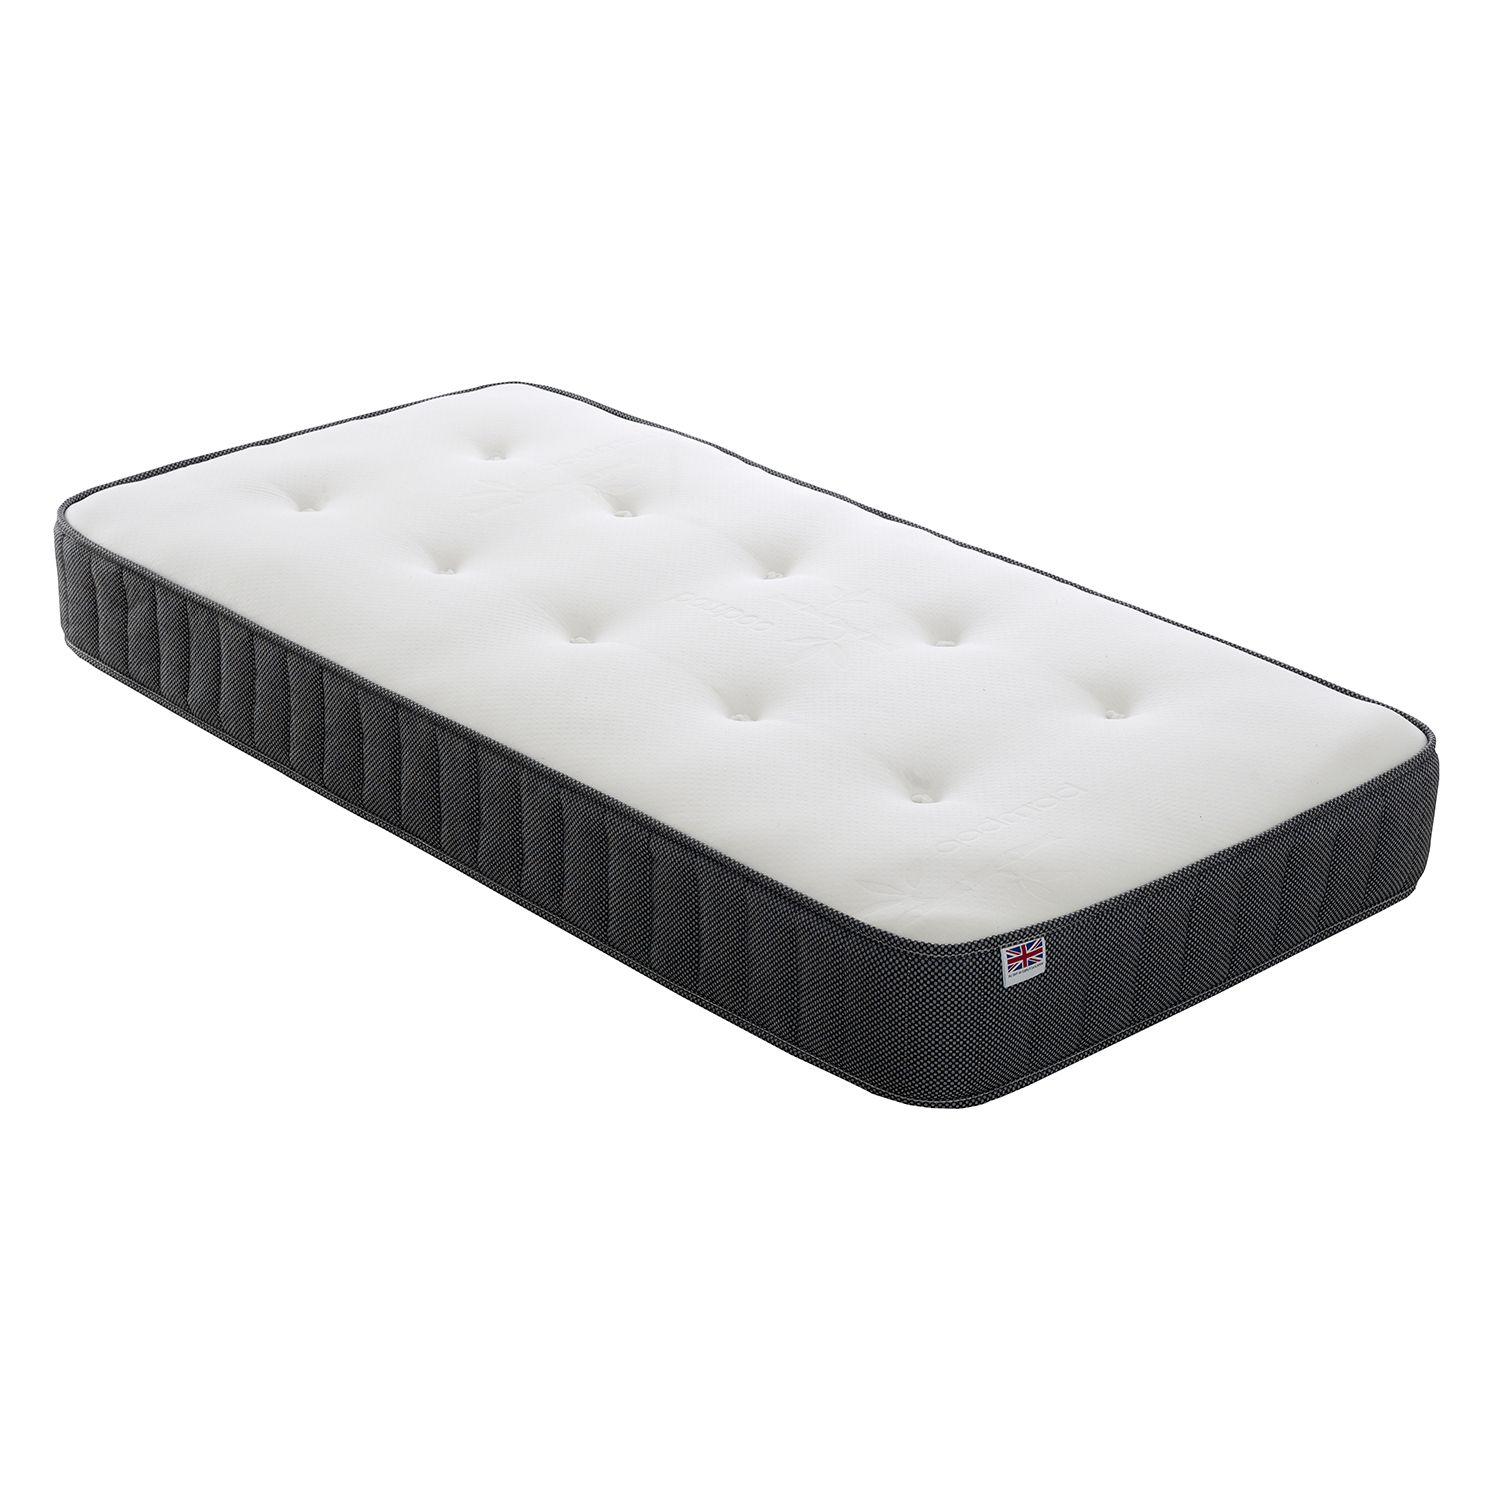 orthopaedic and featuring memory foam the sealy posturepedic